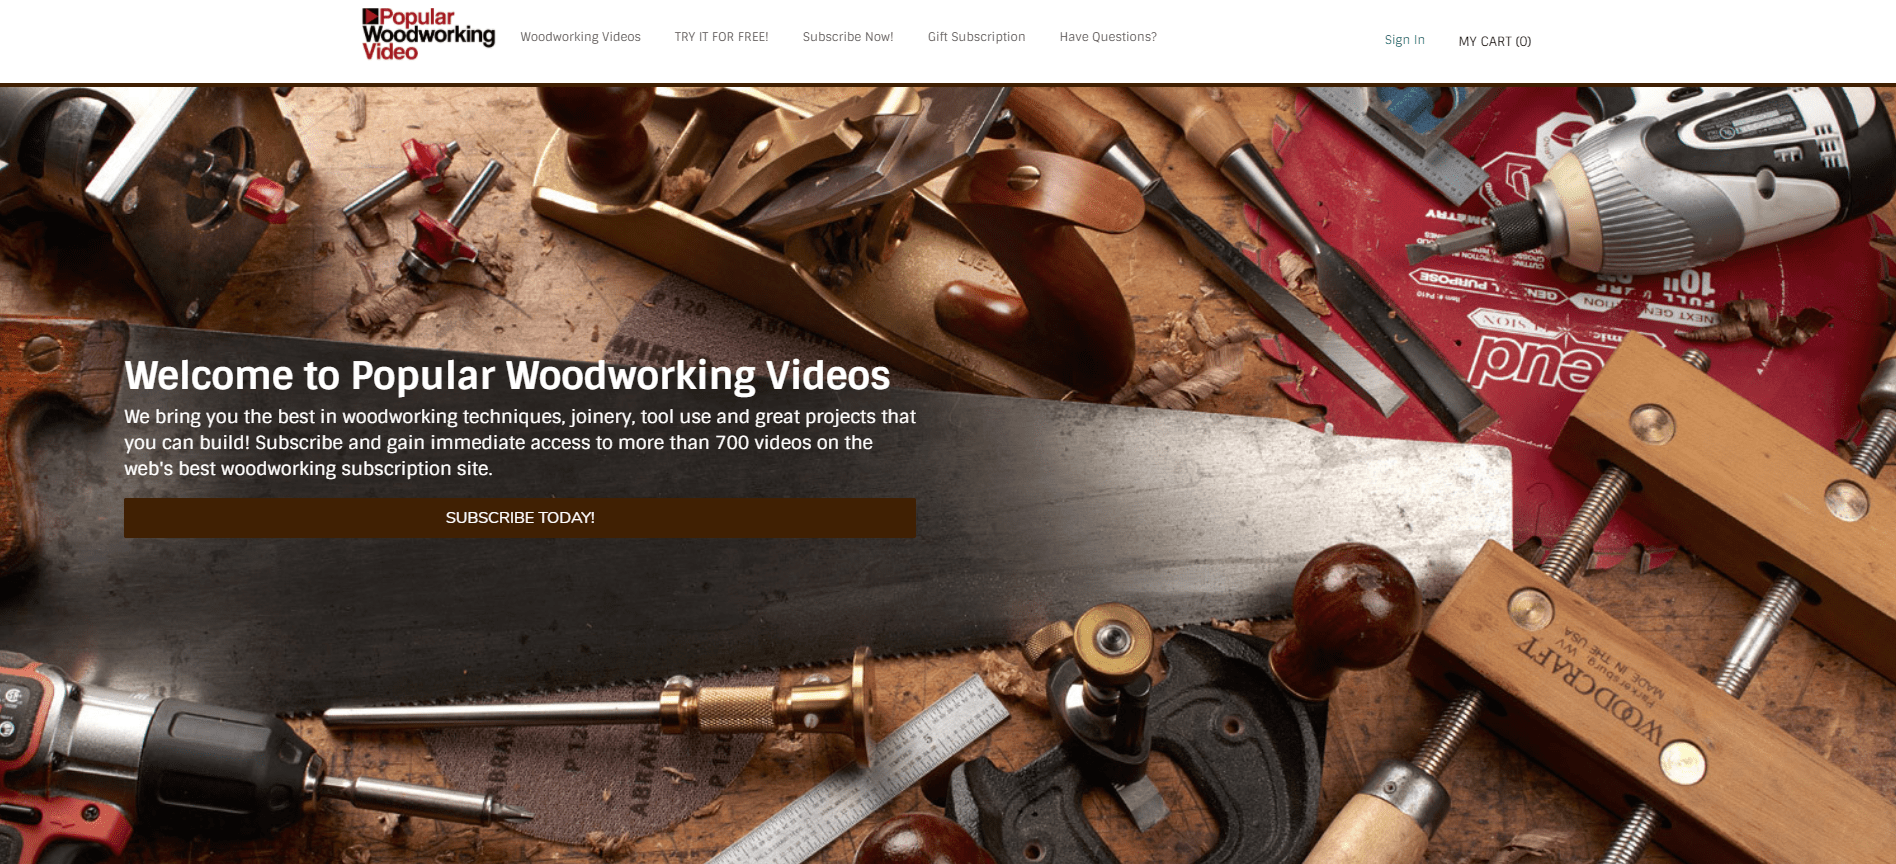 Popular Woodworking Video Home Page screenshot